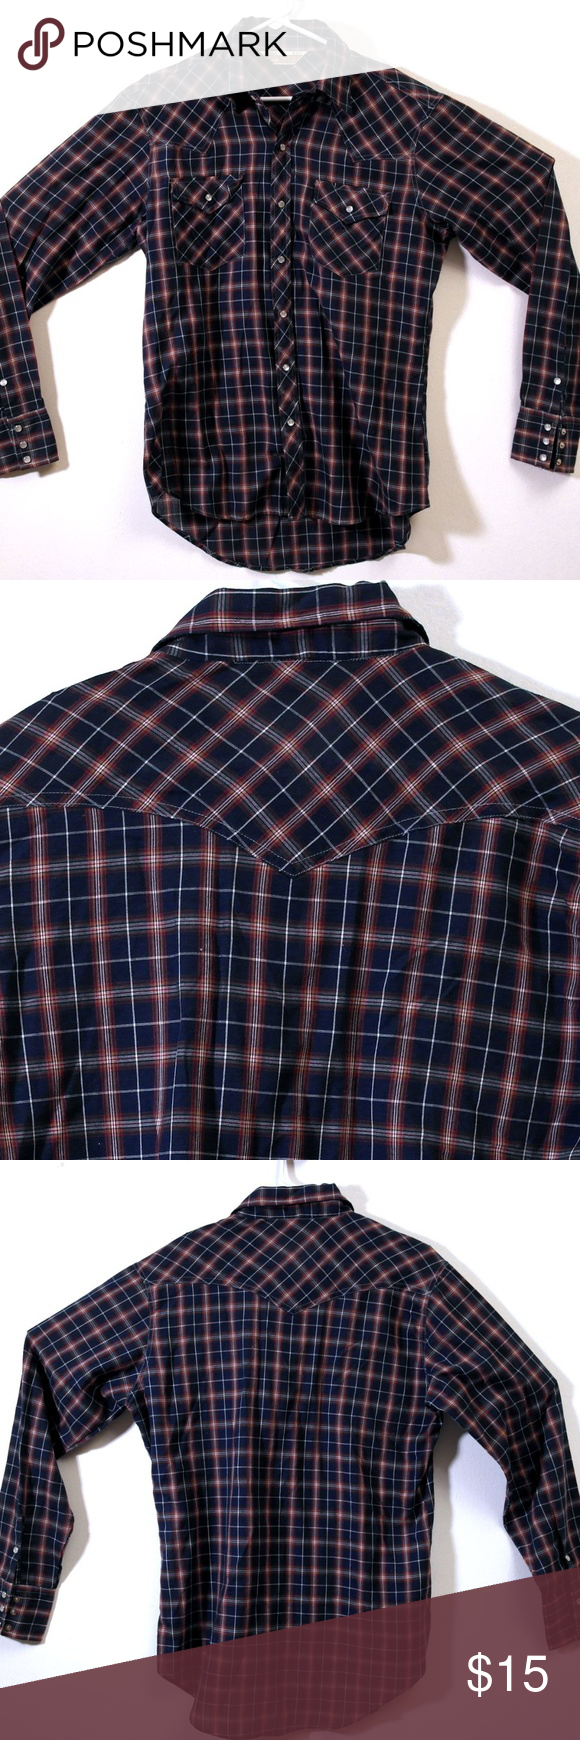 5f7779e6 Vintage SEARS WESTERN WEAR Men's Pearl Snap Shirt Vintage Sears Western Wear  Pearl Snap Button Down Shirt Size Medium Plaid with blue, red, yellow, ...